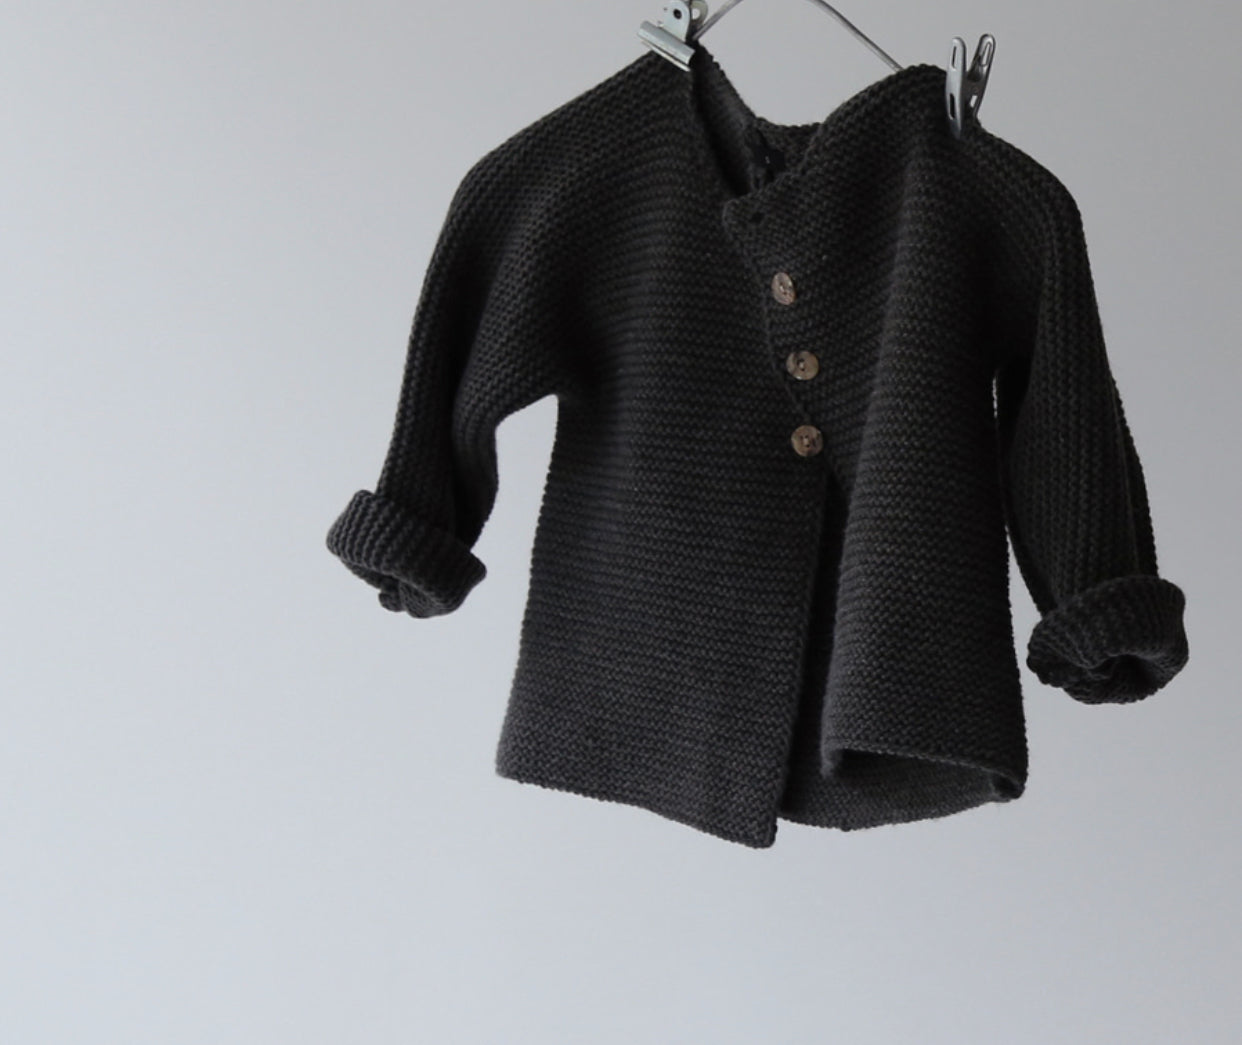 Dark Gray Knit Cardigan